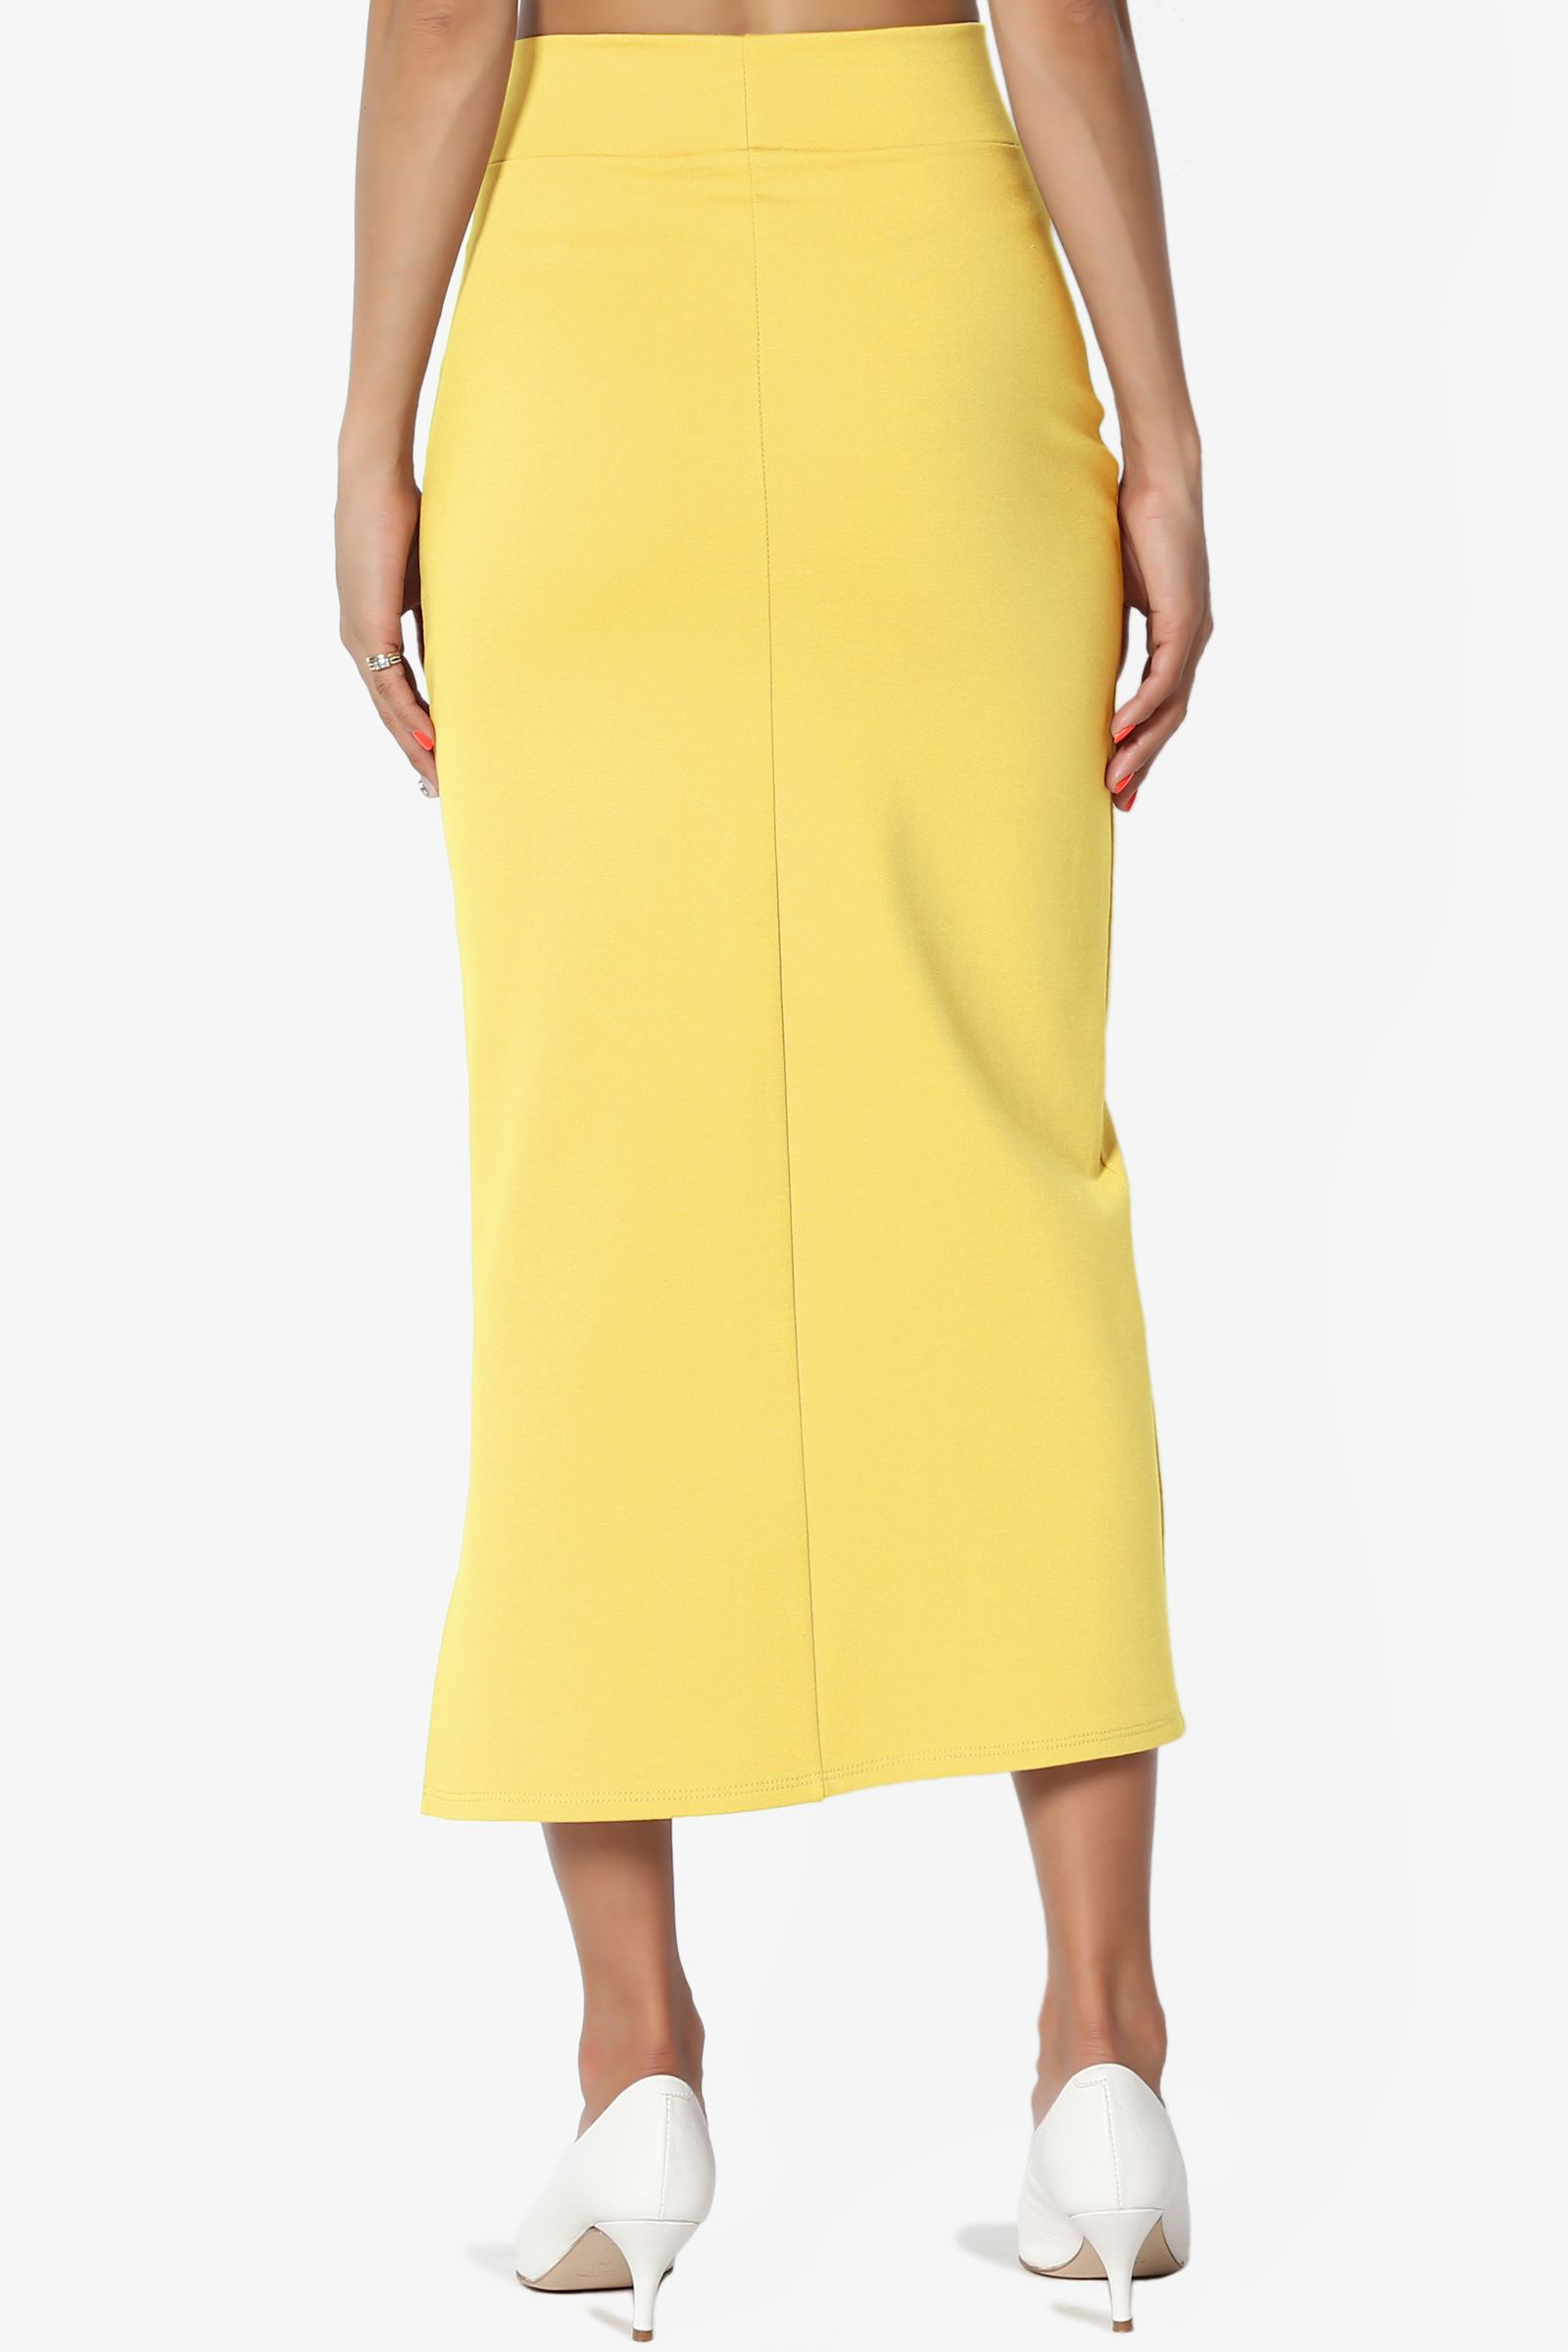 c1b5c11e252a75 TheMogan Women's S~3X Side Slit Ponte Knit High Waist Mid Calf Long Pencil  Skirt #Ad #Slit, #ad, #Ponte, #Knit